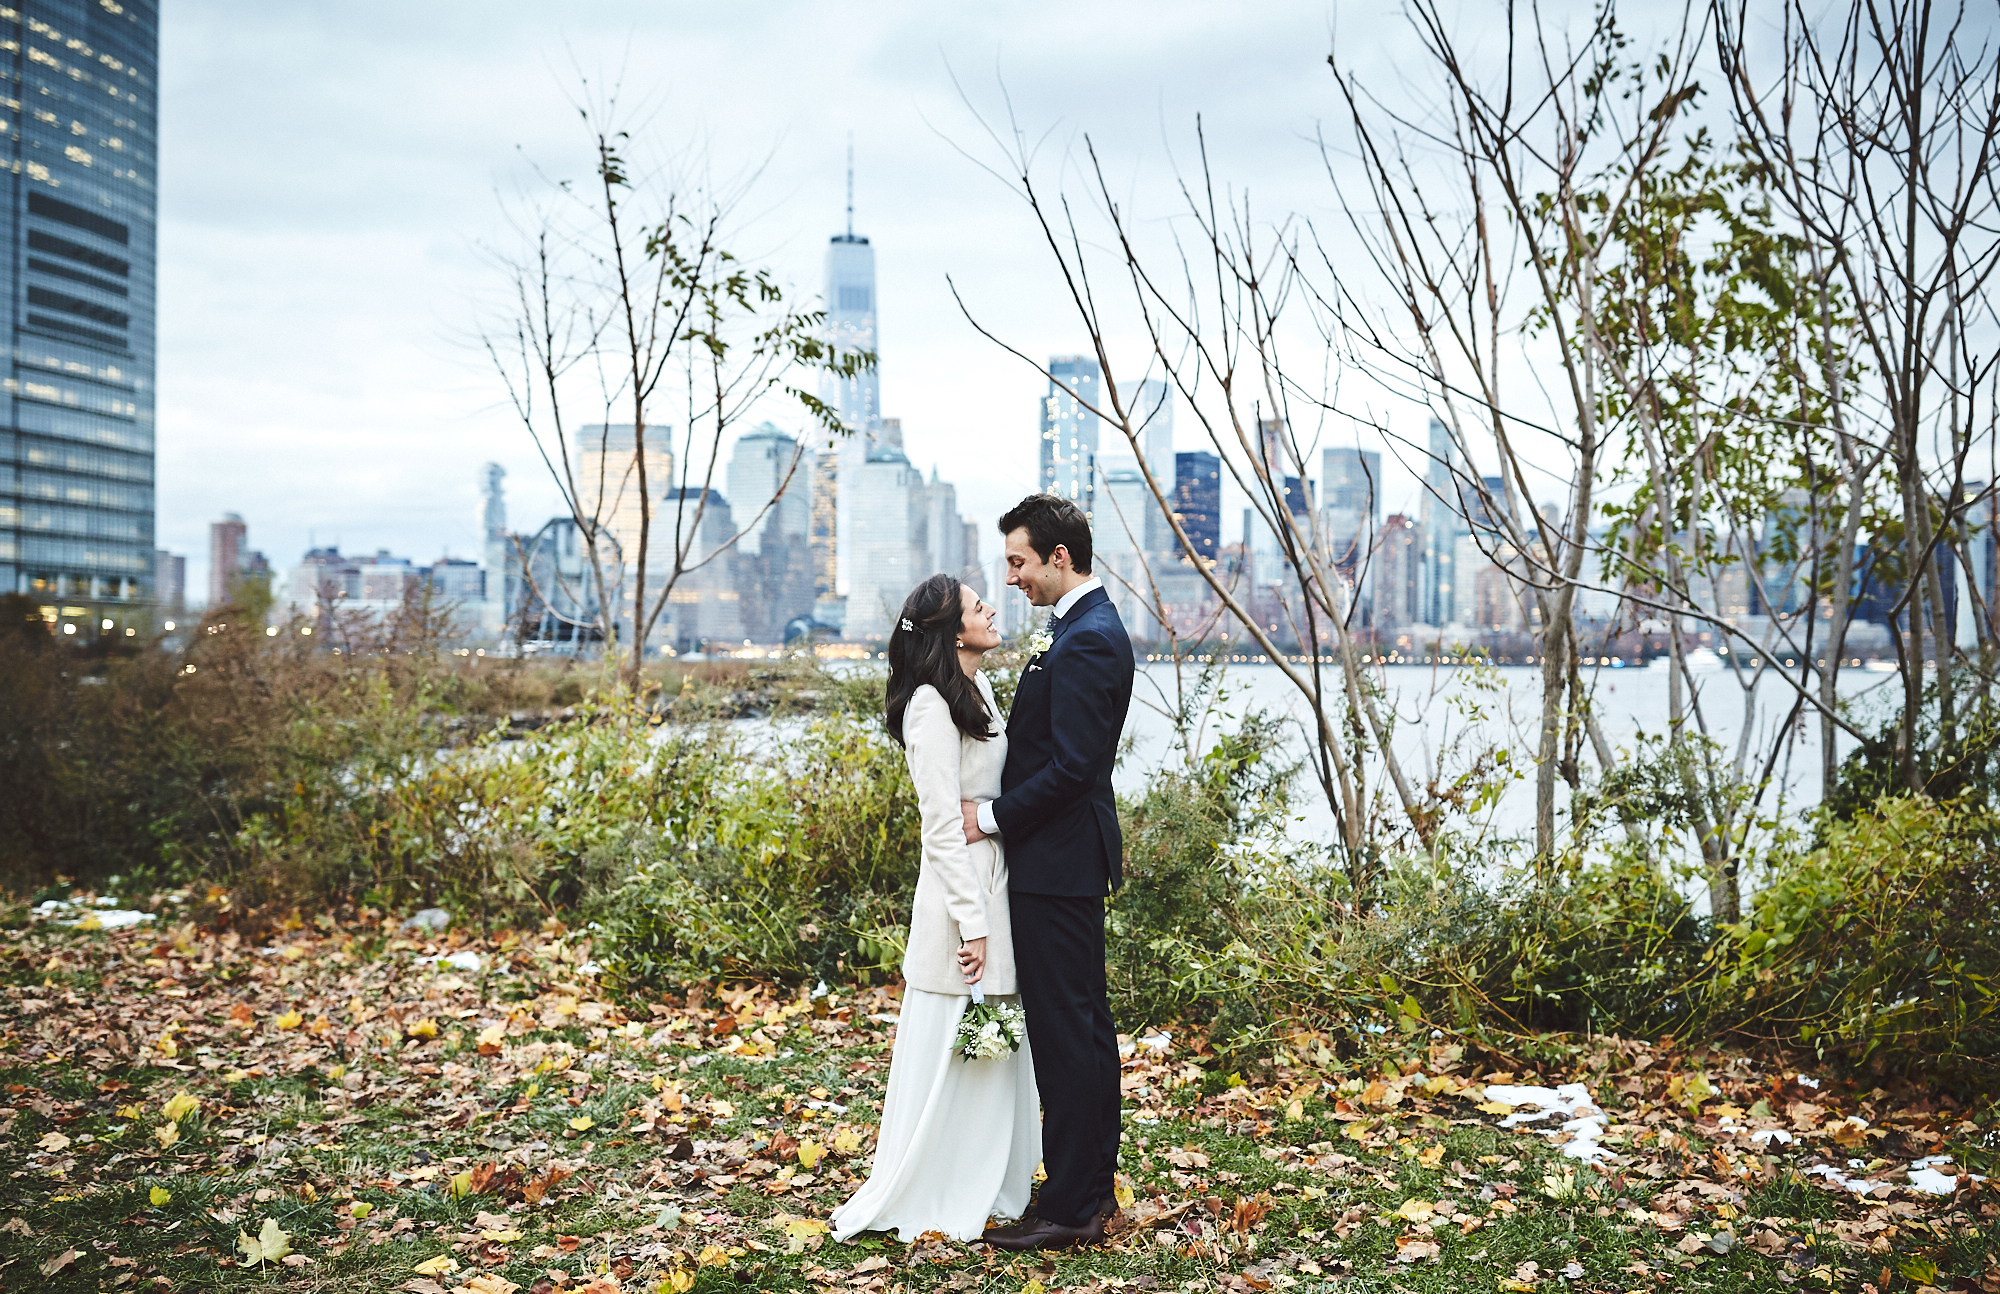 181116_JerseyCityCityHallFallWeddingPhotography_JerseyCityWeddingPhotographer_By_BriJohnsonWeddings_0093.jpg